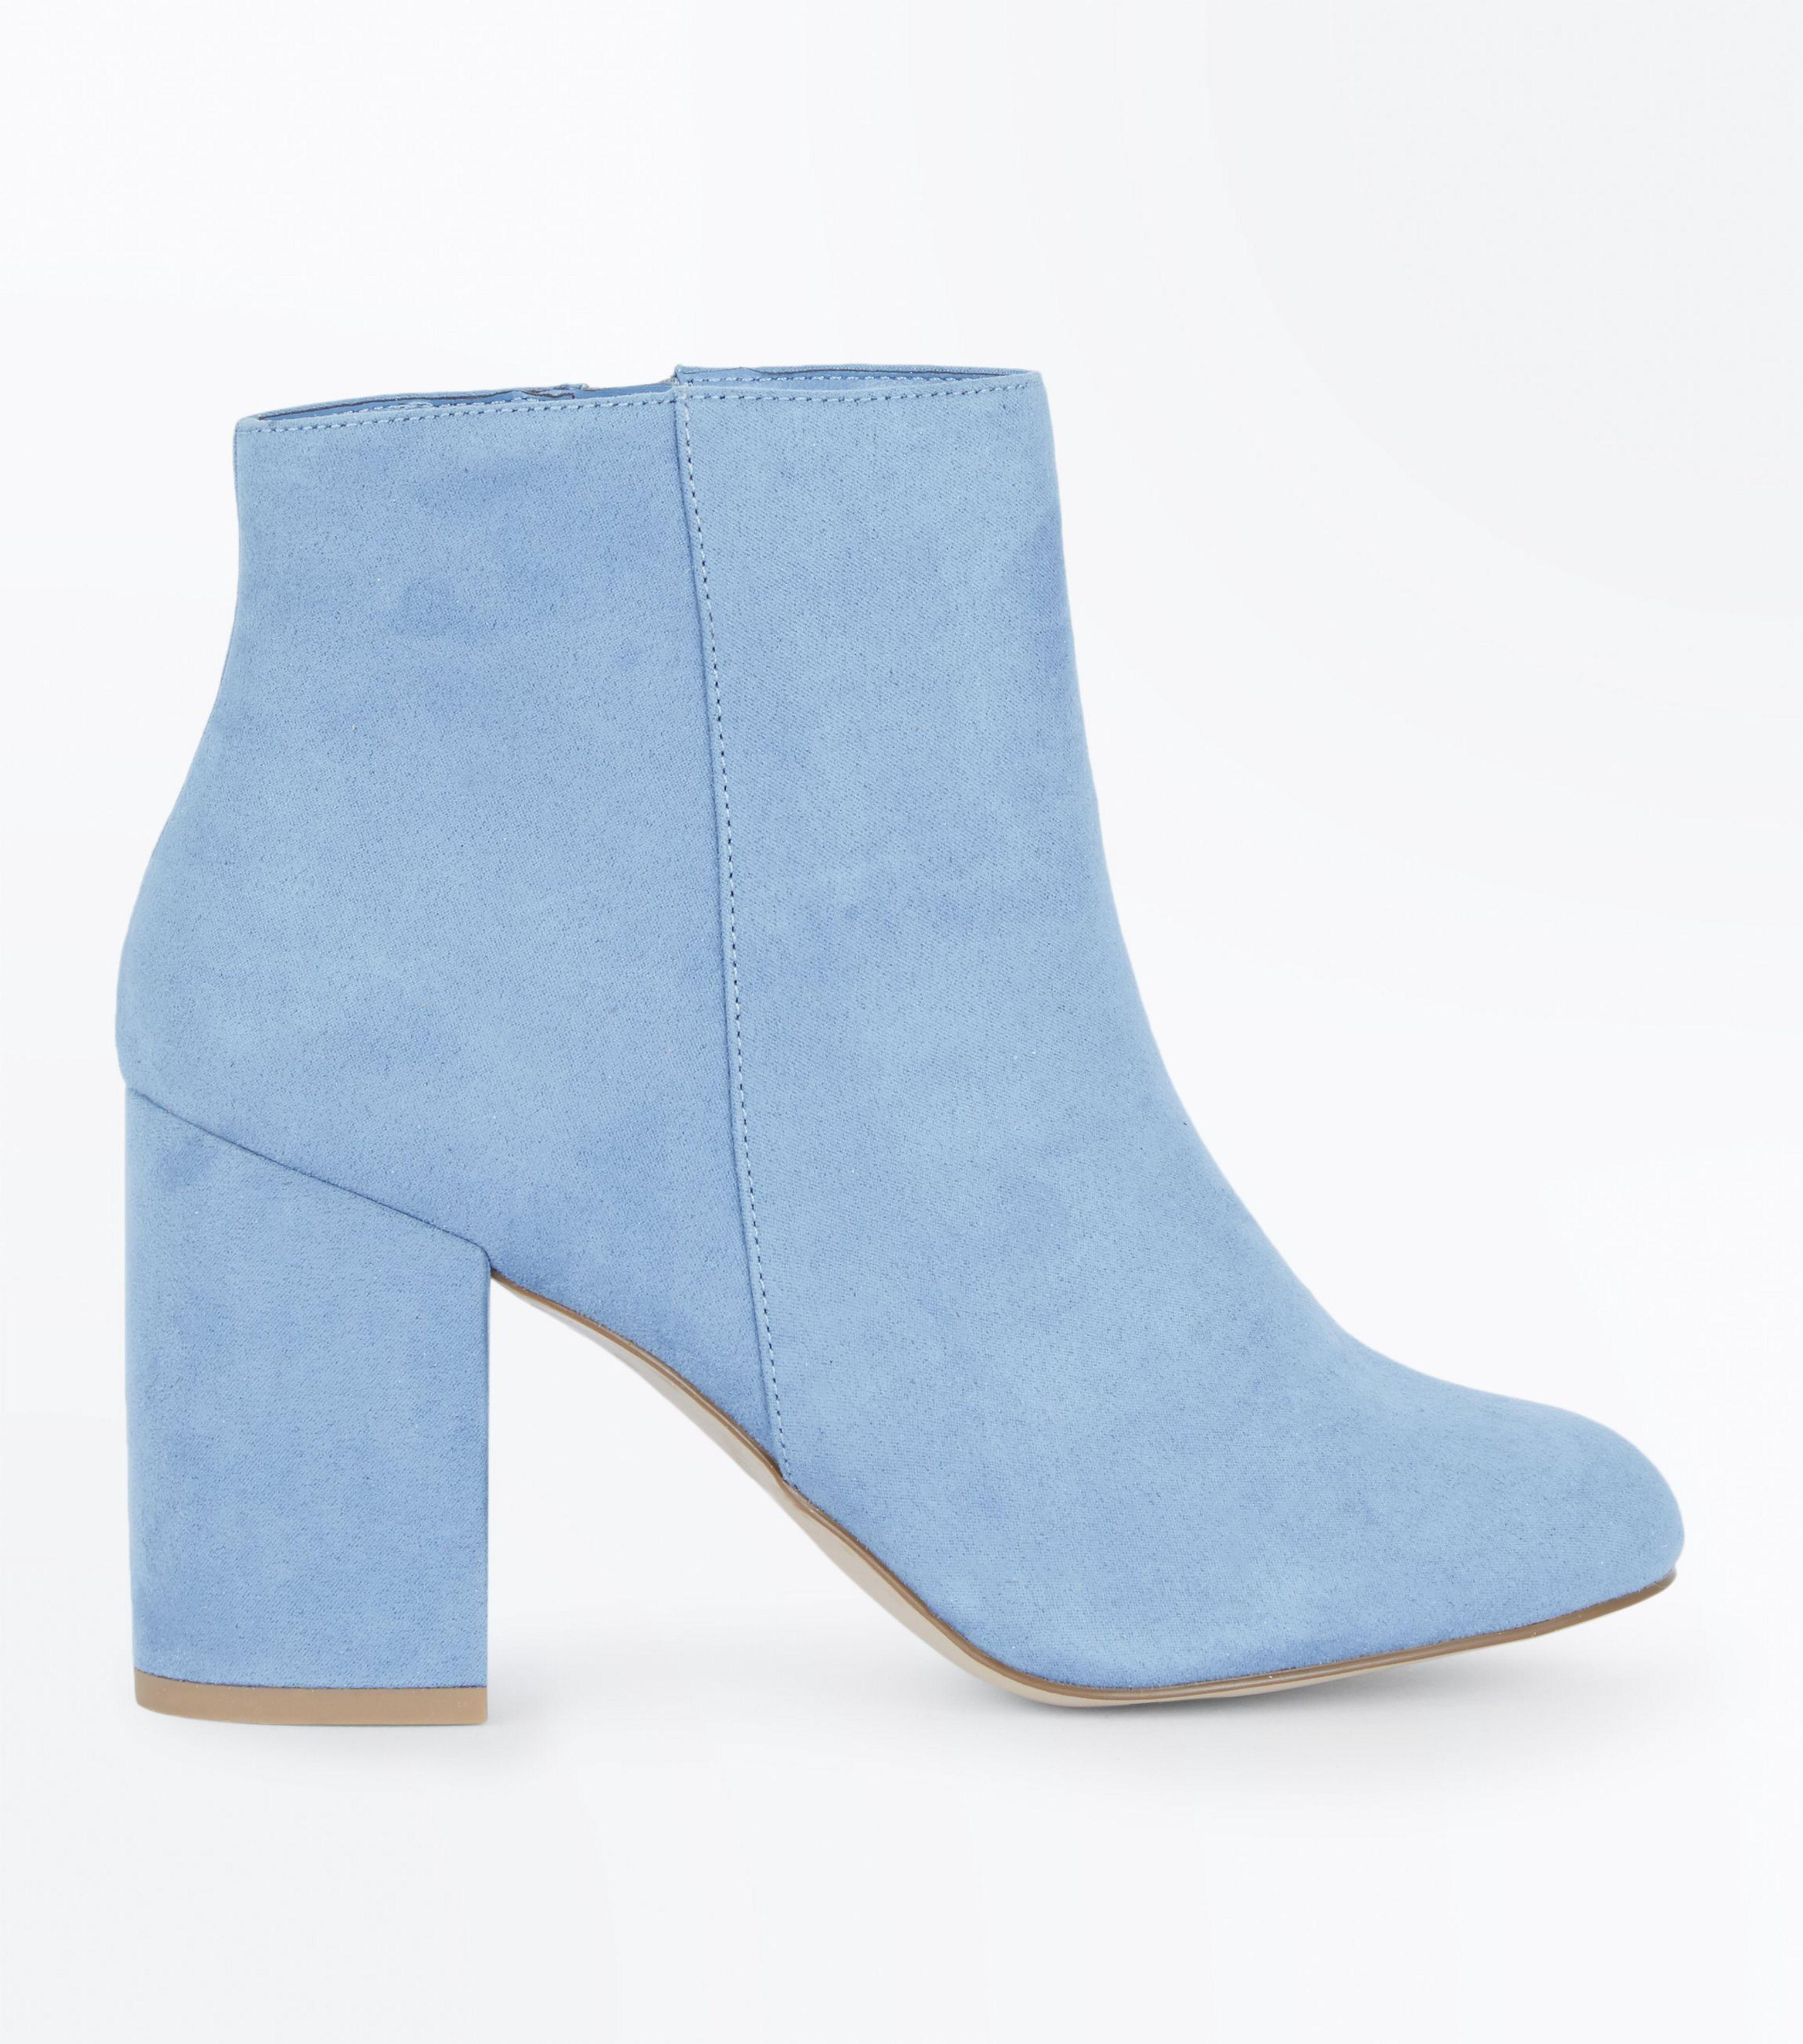 46e5e3b1c9ad5 New Look Pale Blue Suedette Block Heel Ankle Boots in Blue - Lyst